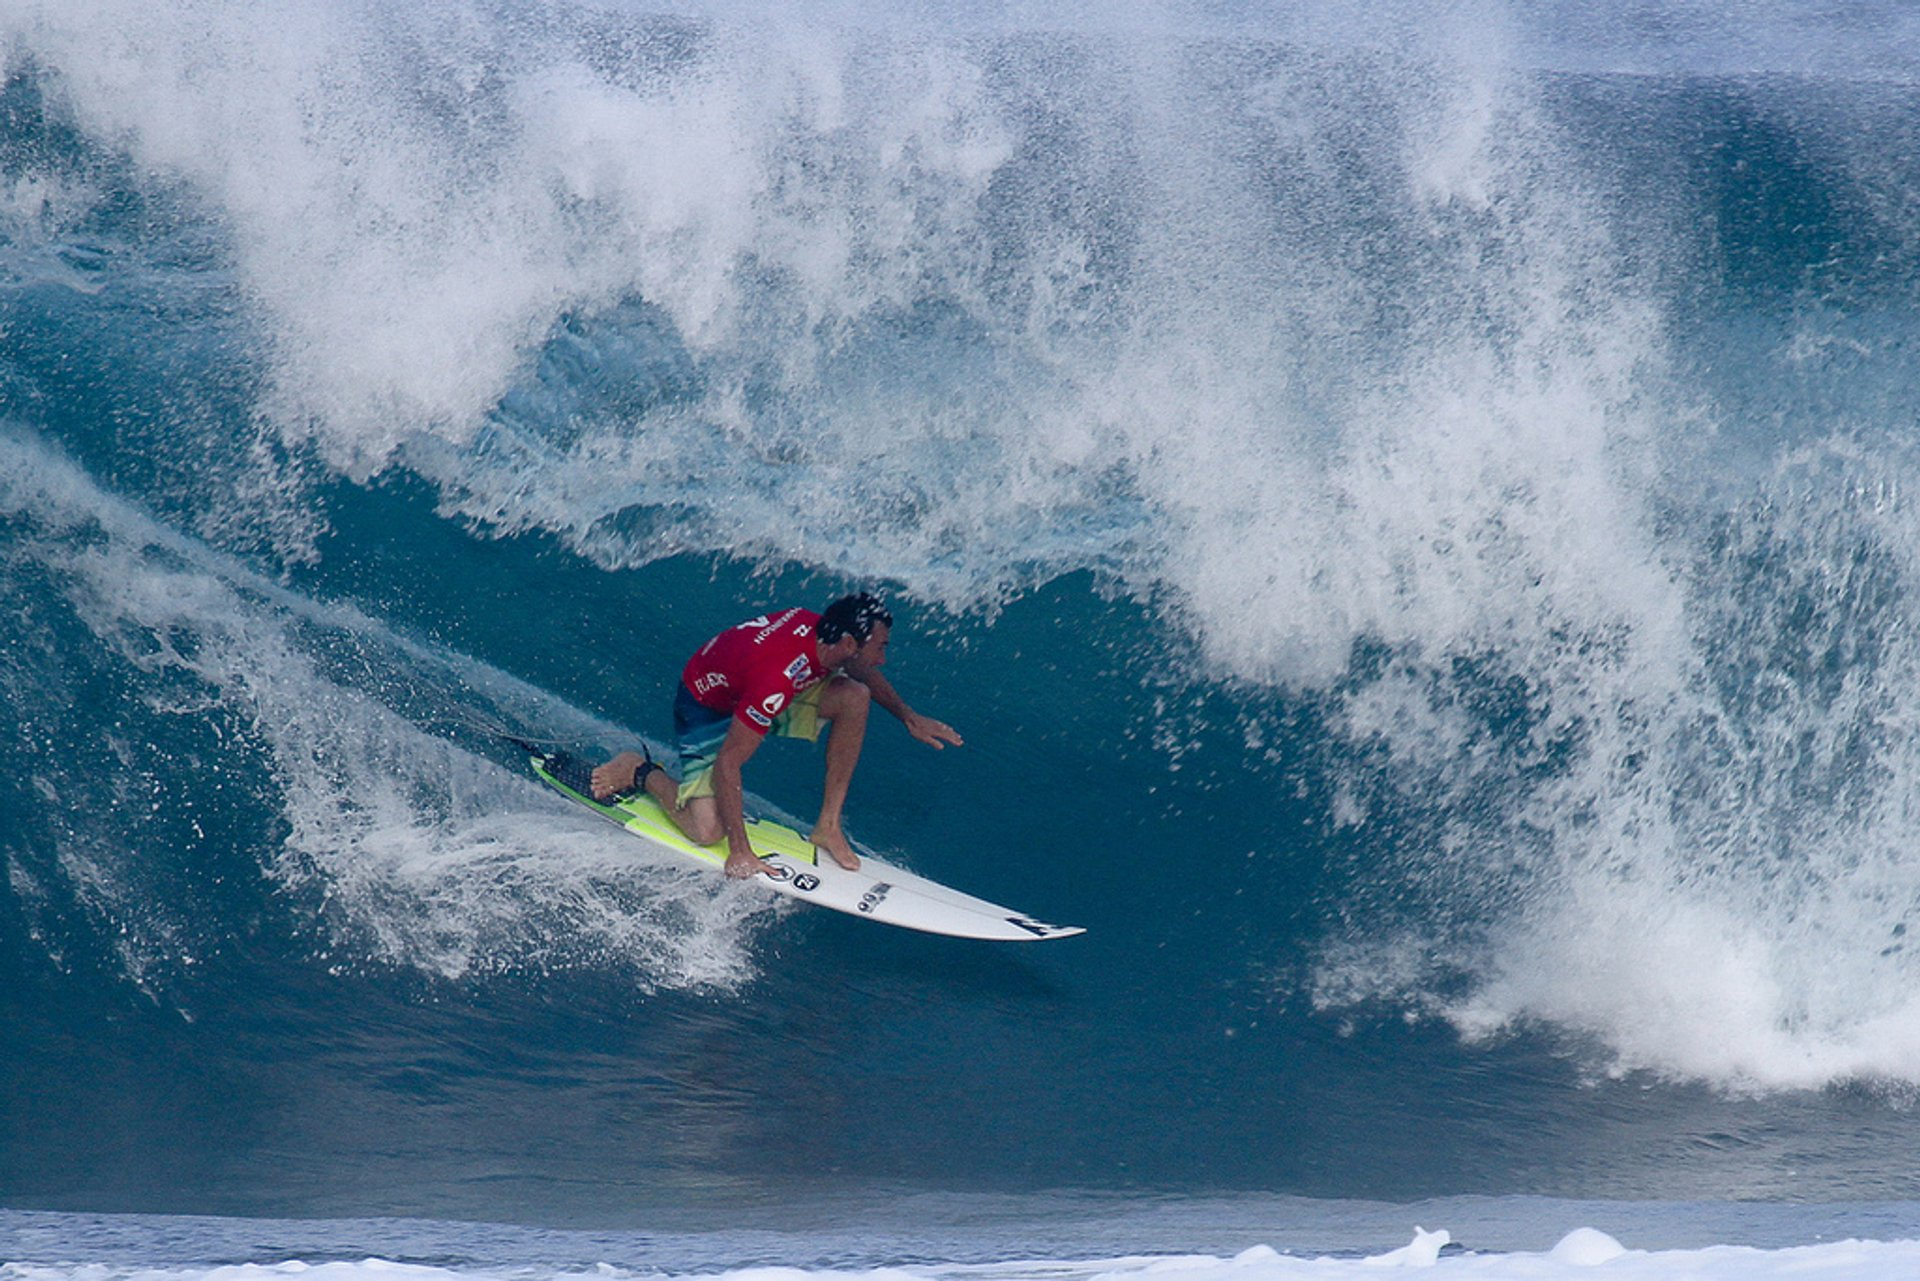 Billabong Pipe Masters in Hawaii 2020 - Best Time